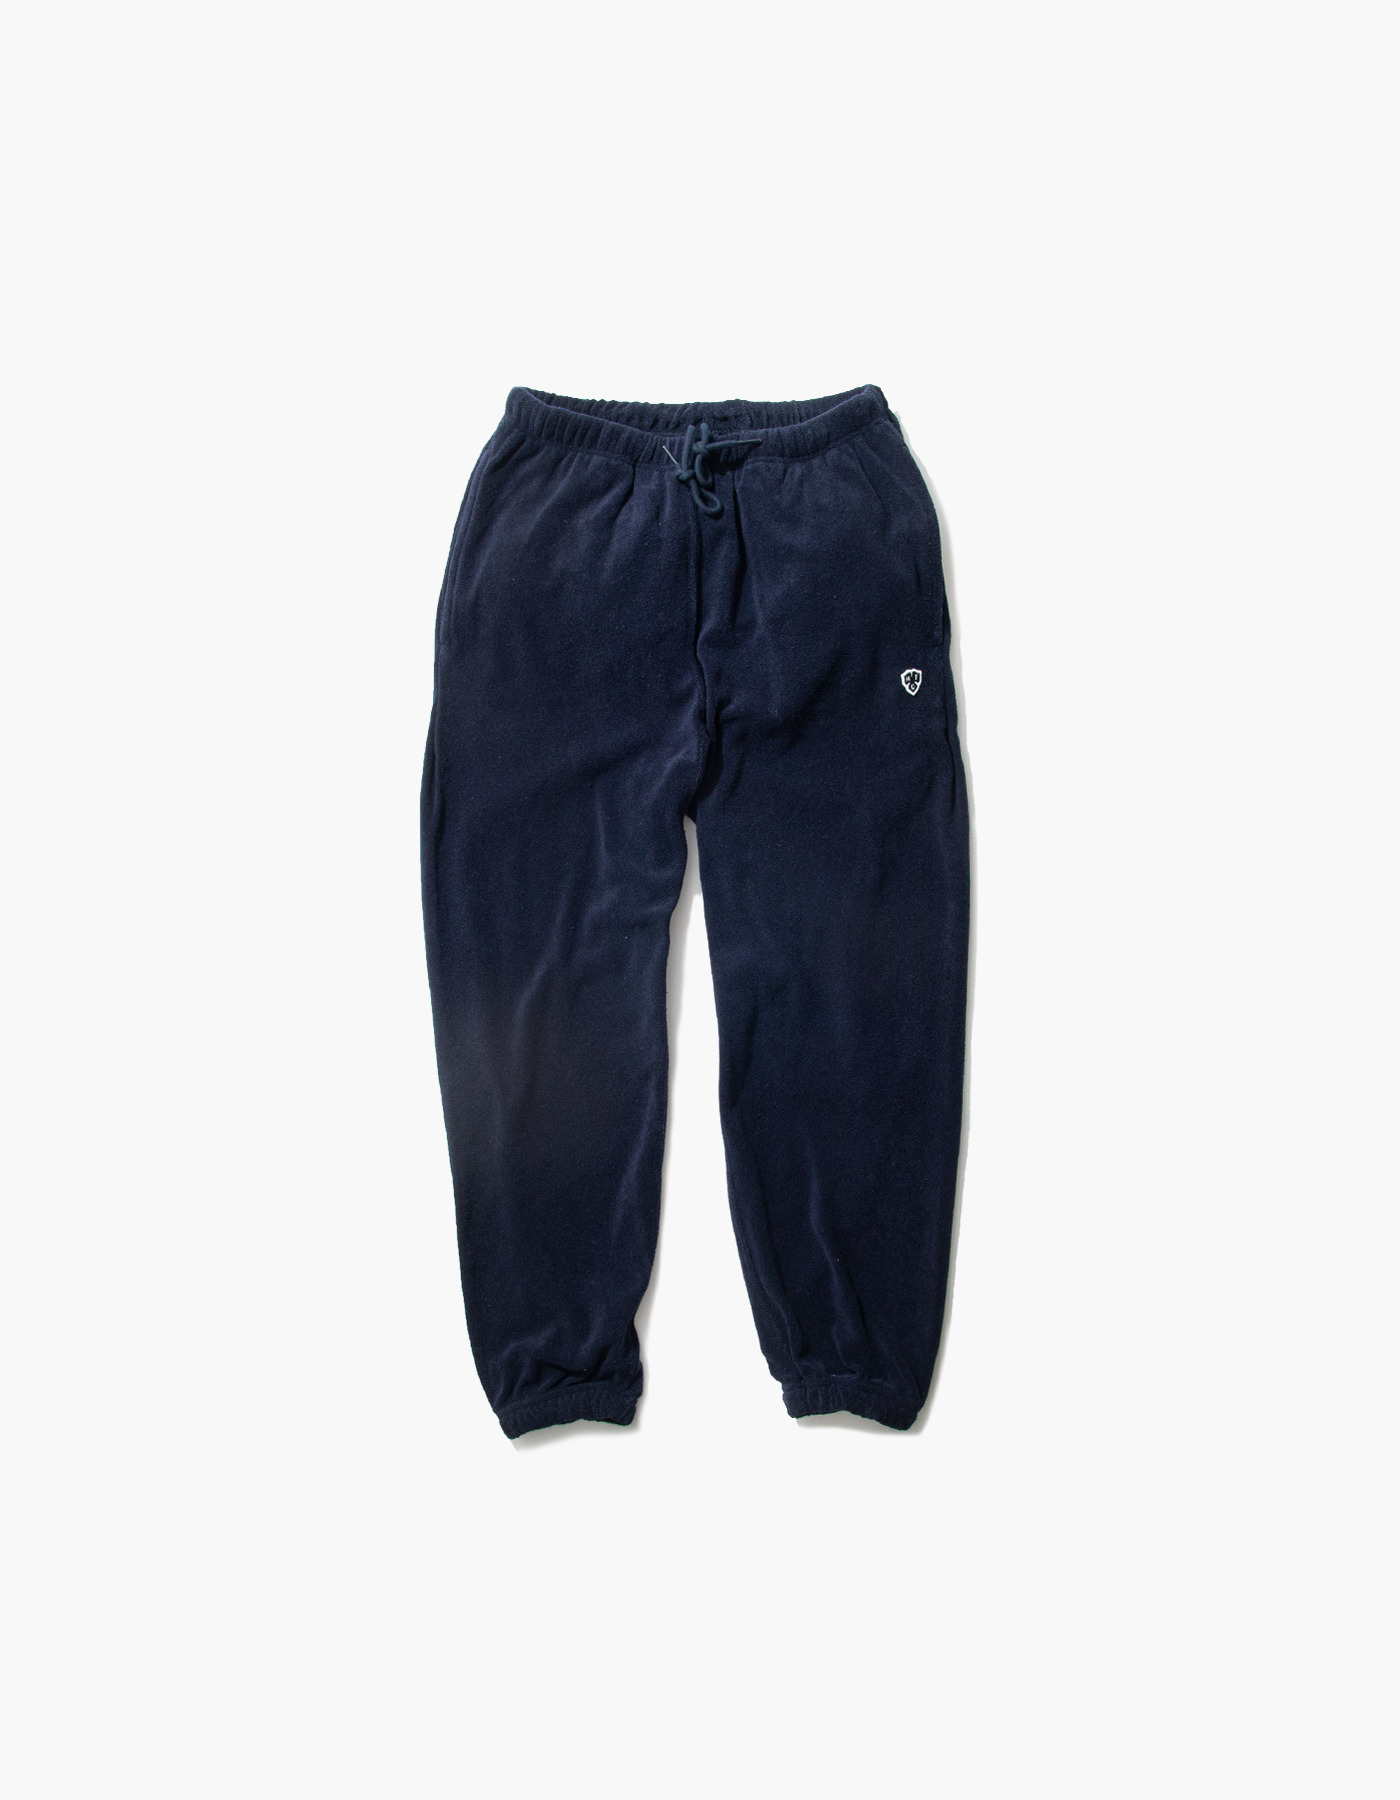 HFC CREST TOWEL JOGGER PANTS / NAVY